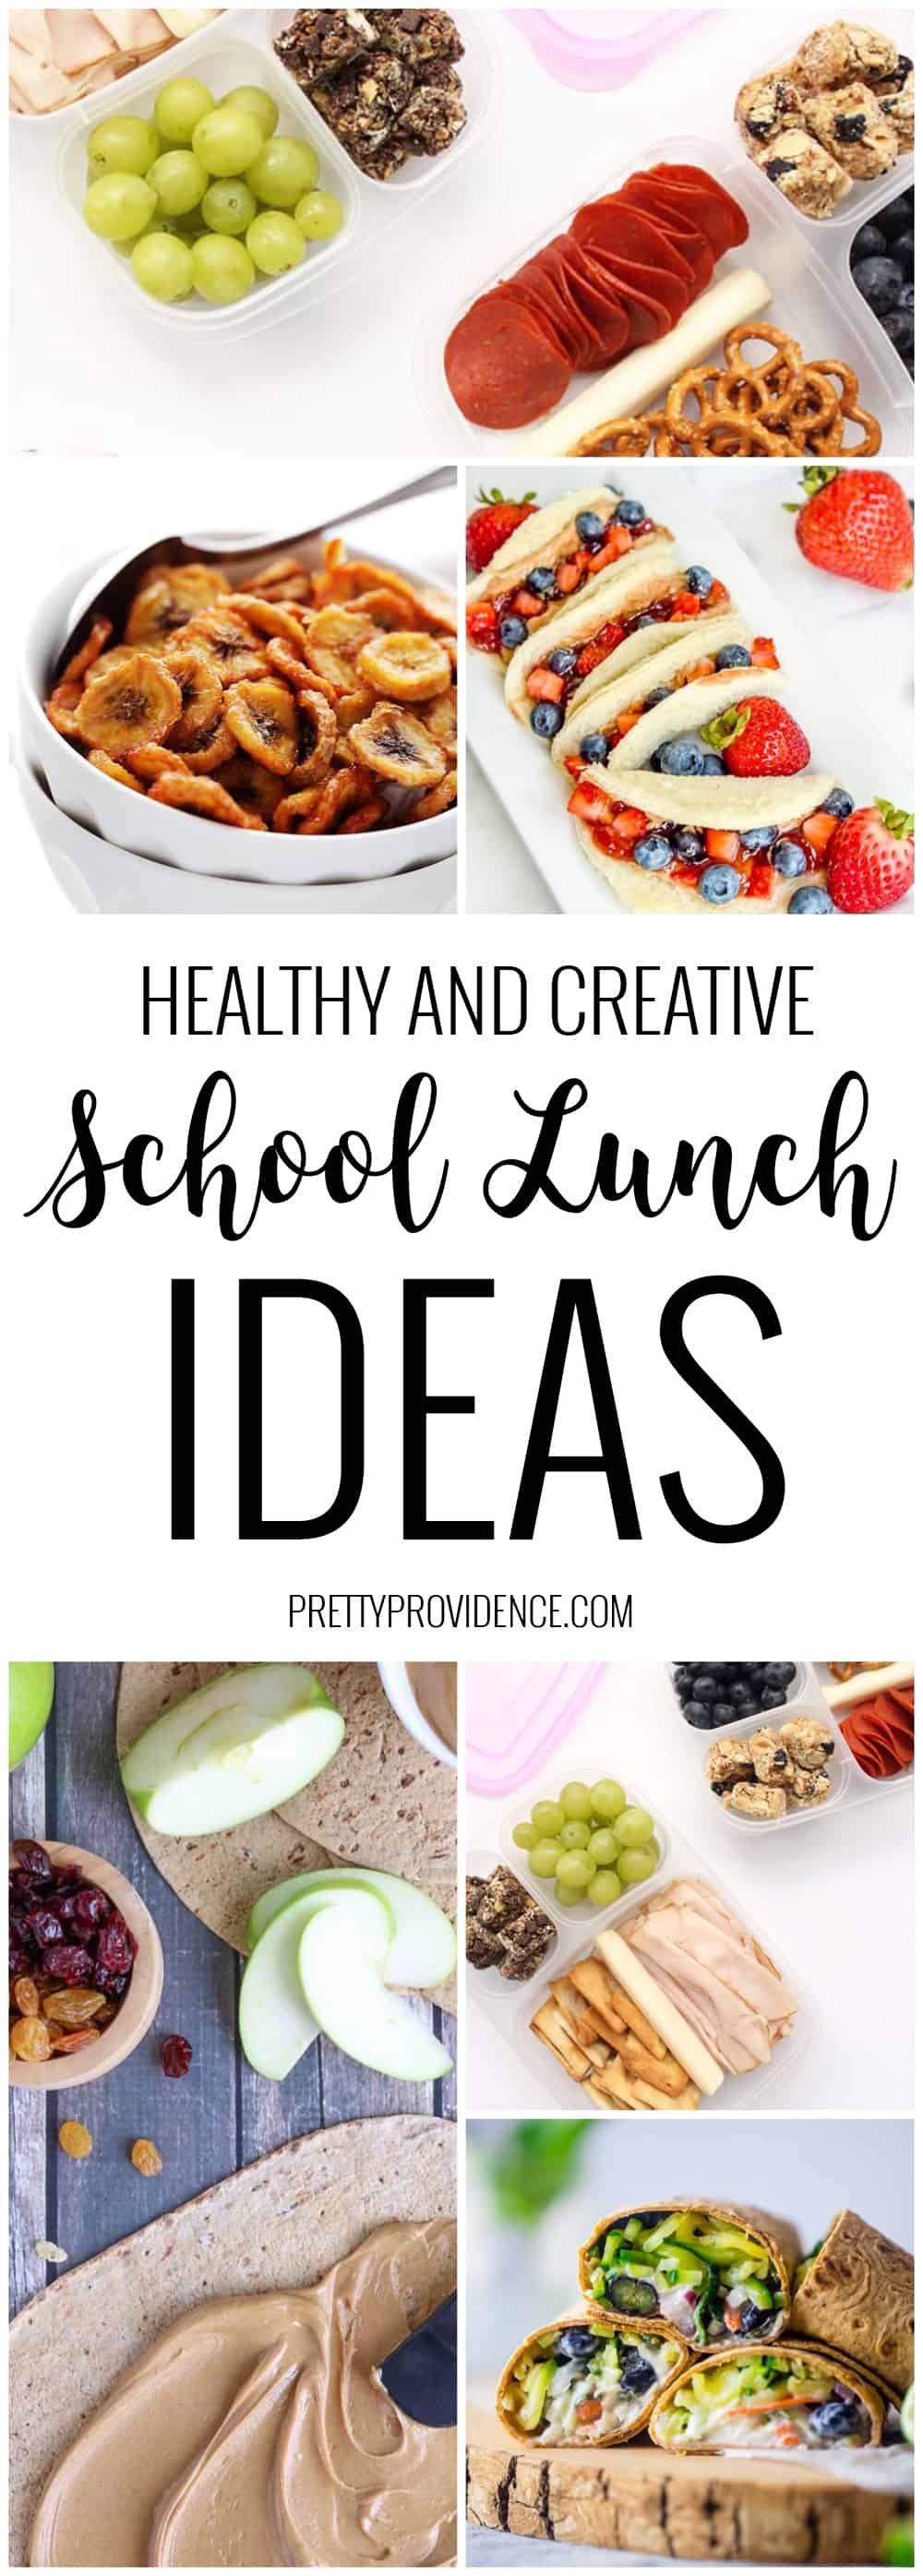 Bored of the same old lunches? These healthy and creative back to school lunch ideas are sure to get you out of your lunch rut!